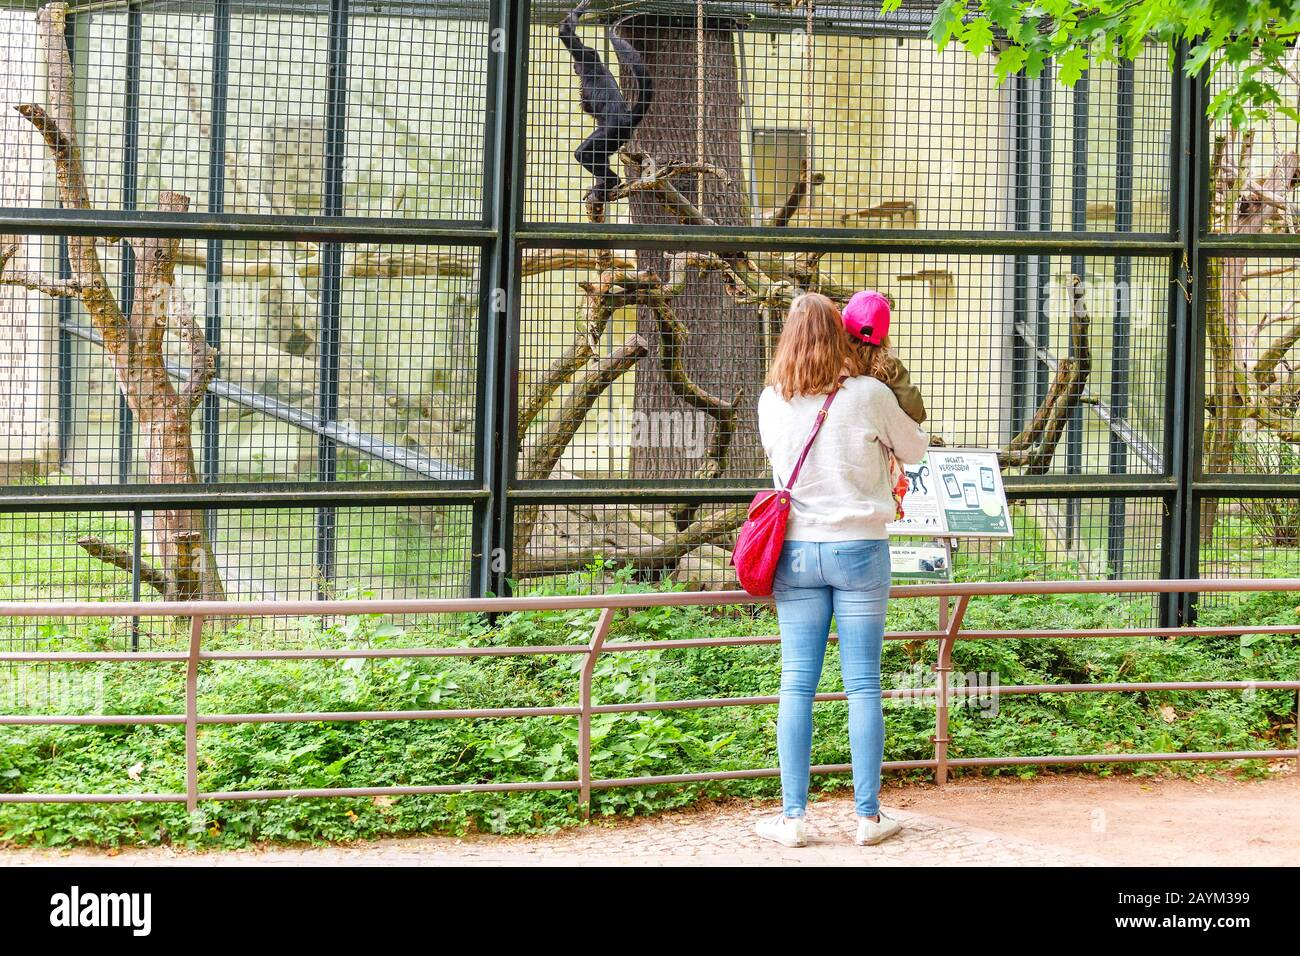 18 MAY 2018, BERLIN, GERMANY: young child kid with mother looking at monkey in the Zoo Stock Photo